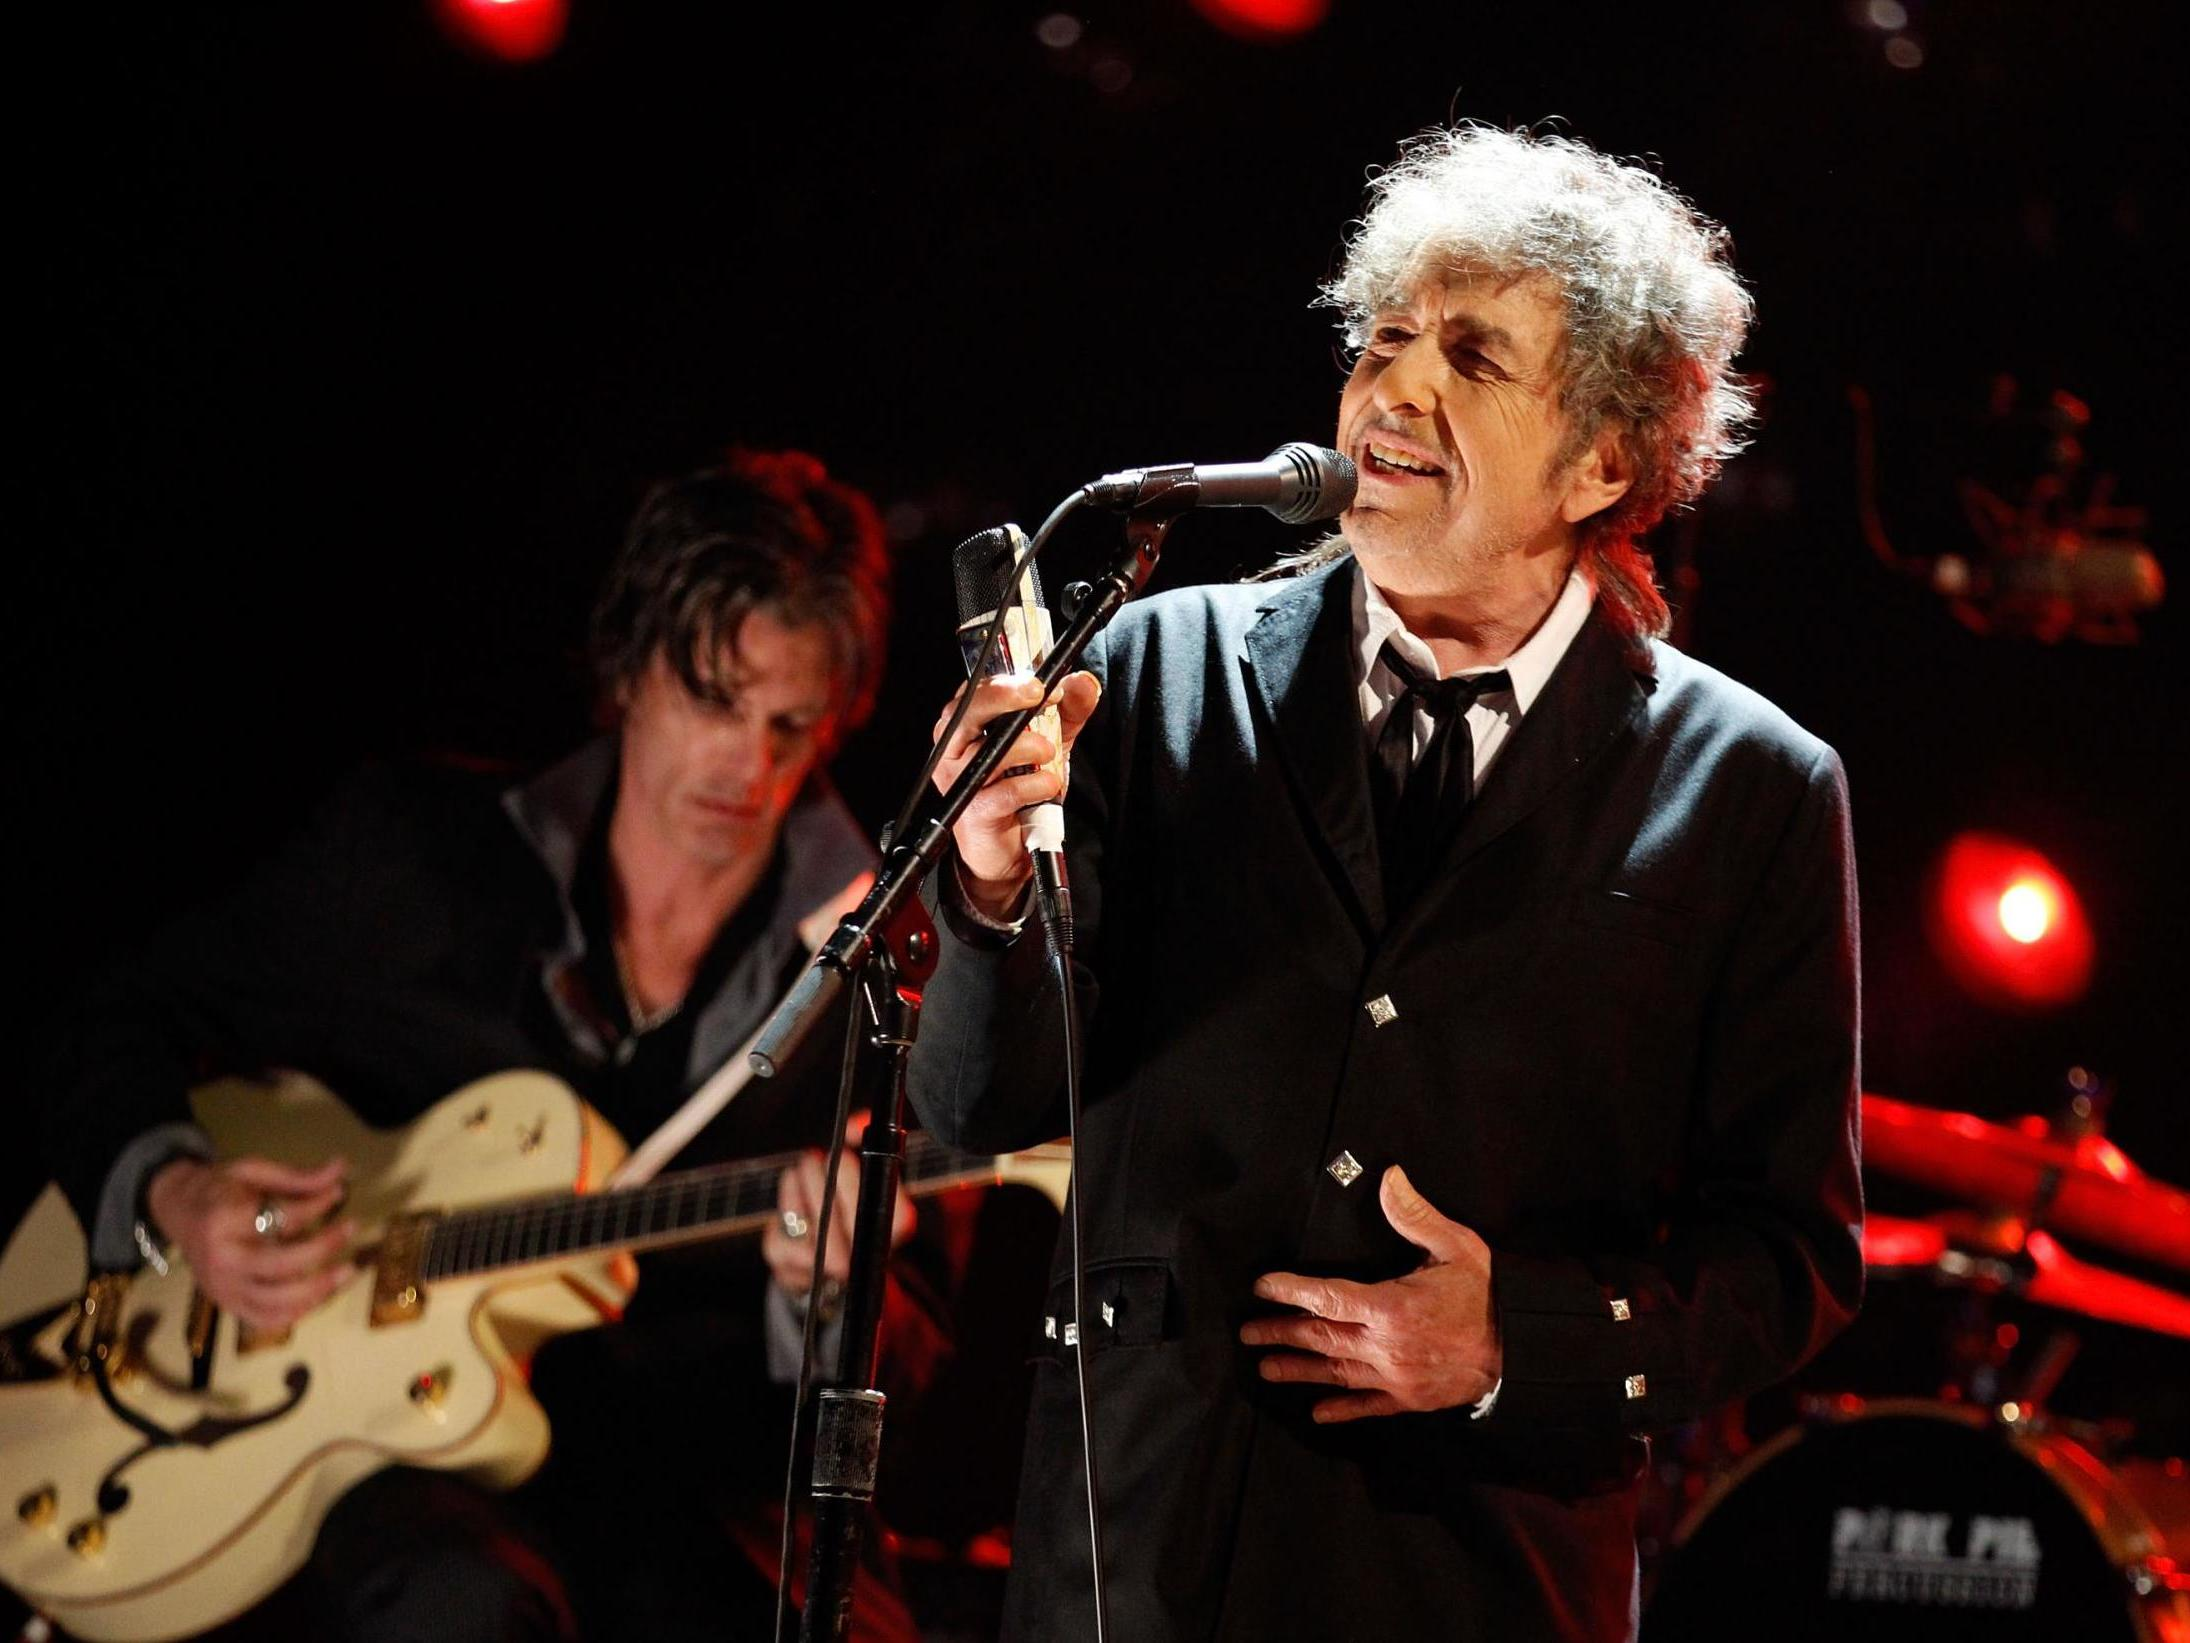 Bob Dylan in Hyde Park? He is still an icon but live he